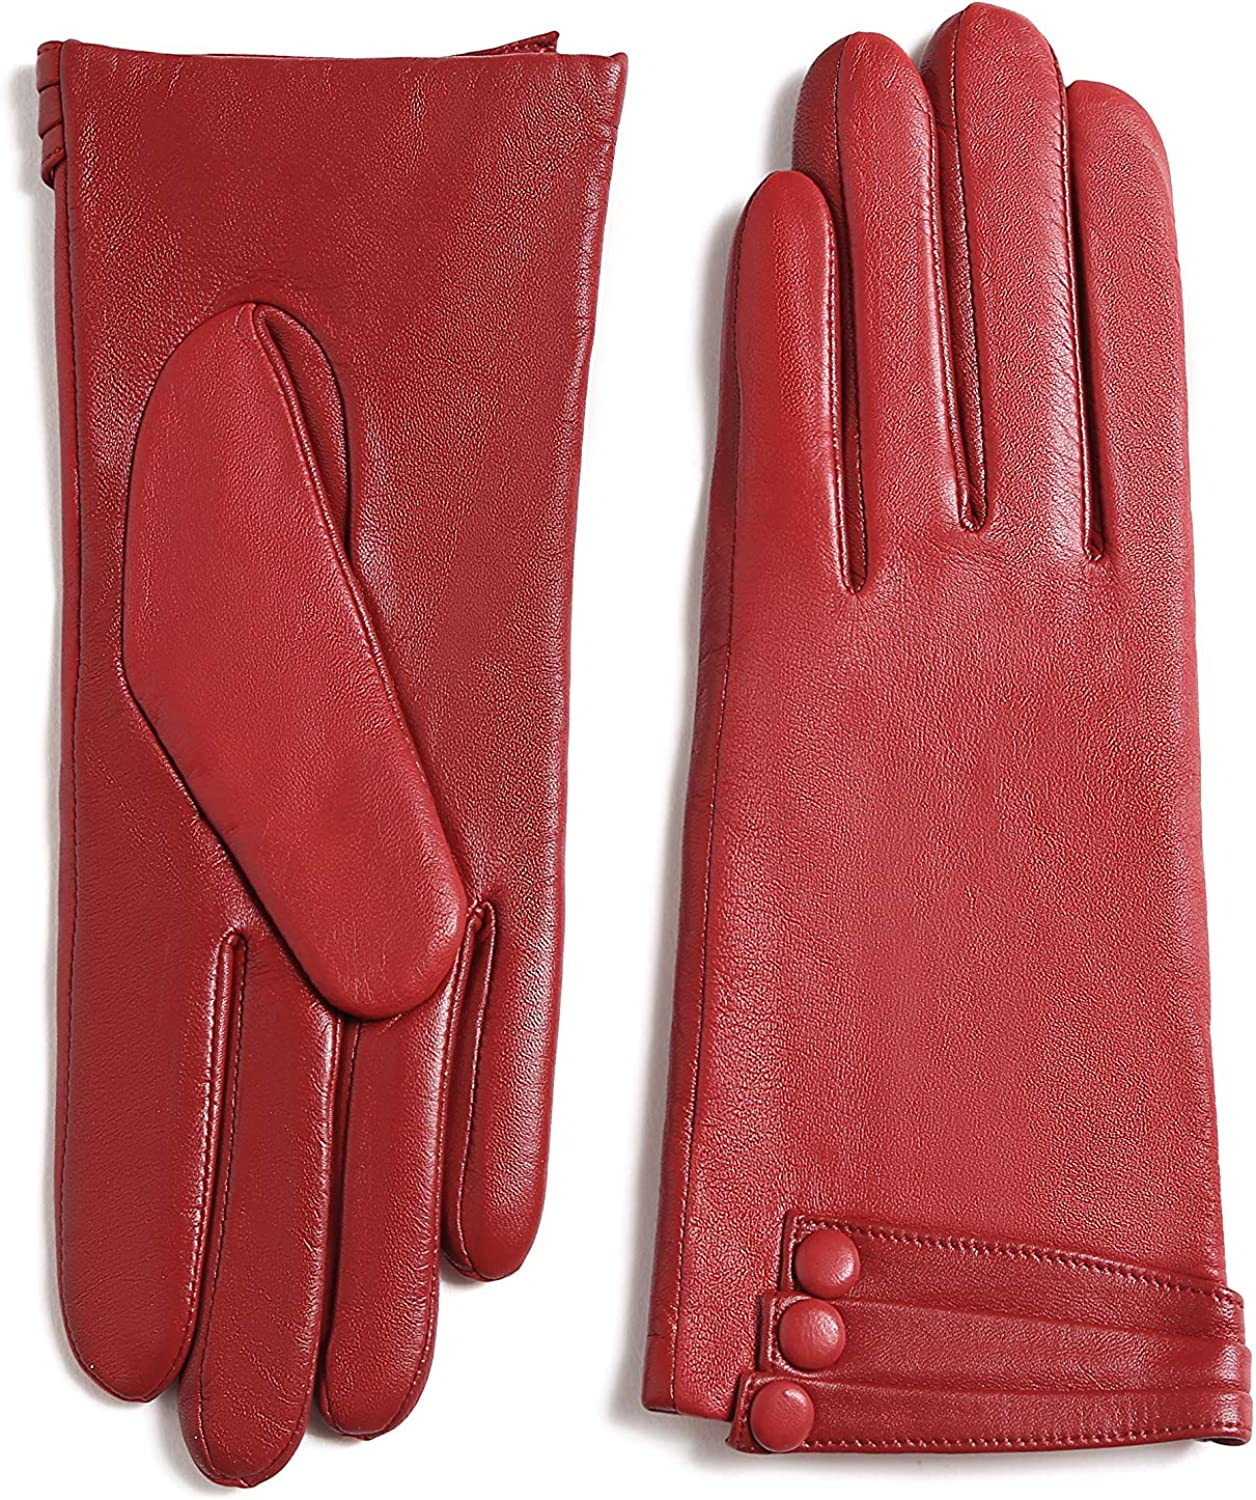 YISEVEN Women's Winter Driving Touchscreen Leather Gloves Wool Lined Buttoned Cuff